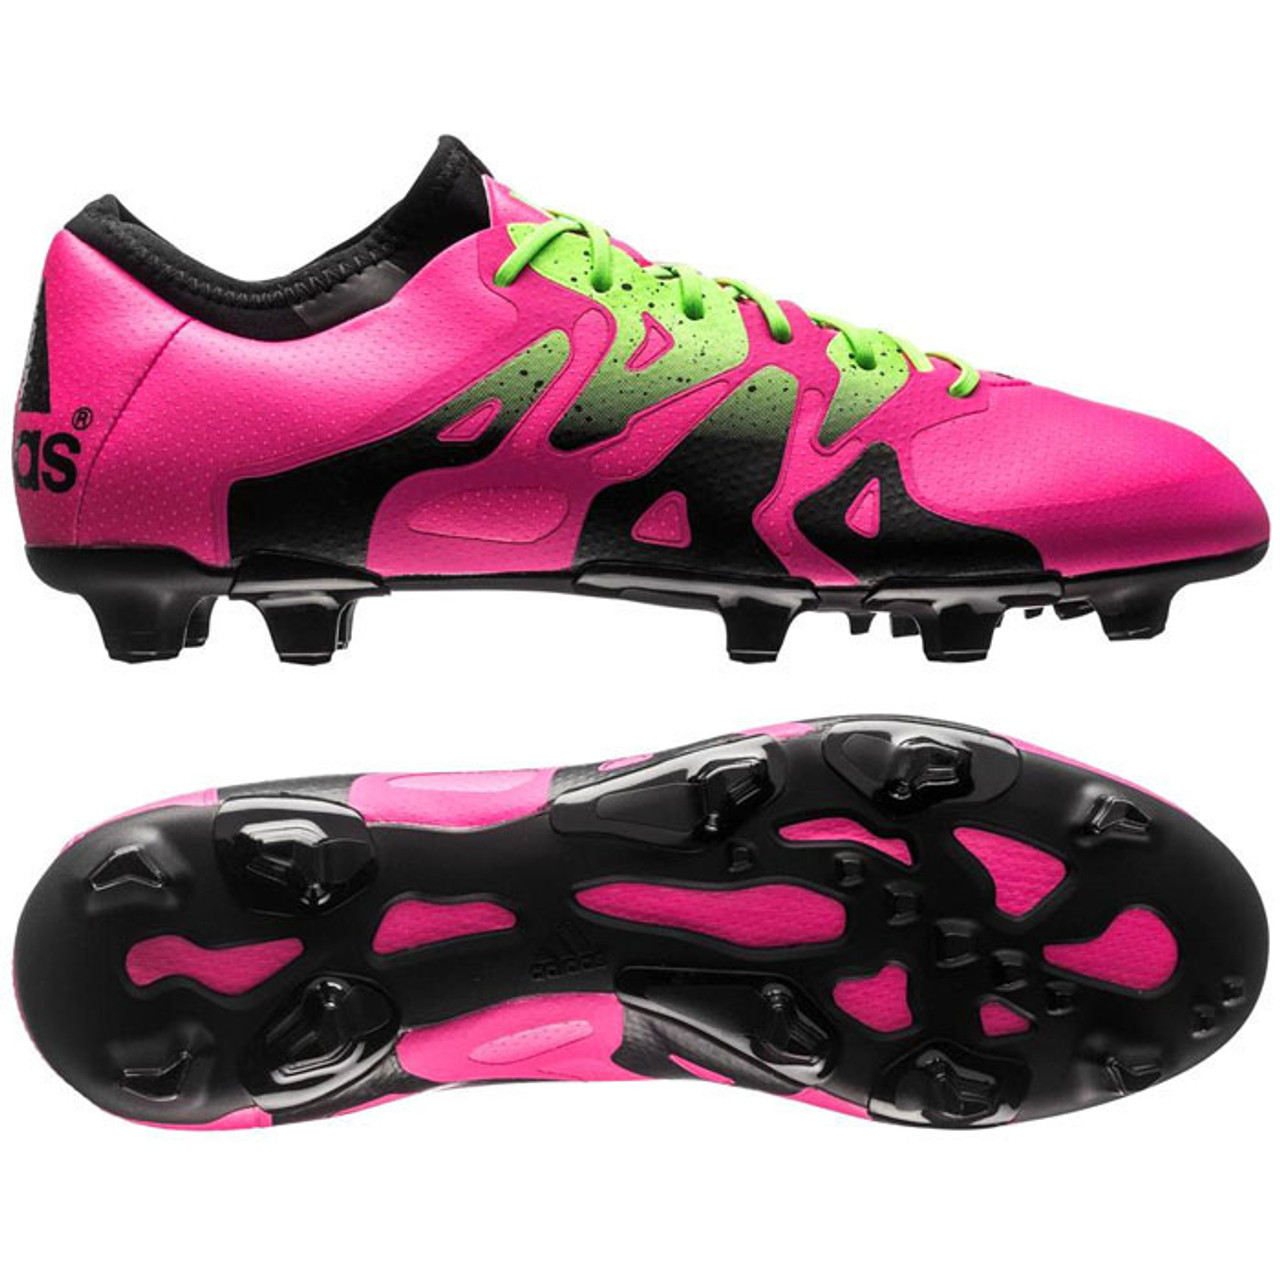 c266c6efd ADIDAS X 15.1 FG AG firm ground soccer cleats shock pink - Soccer Plus